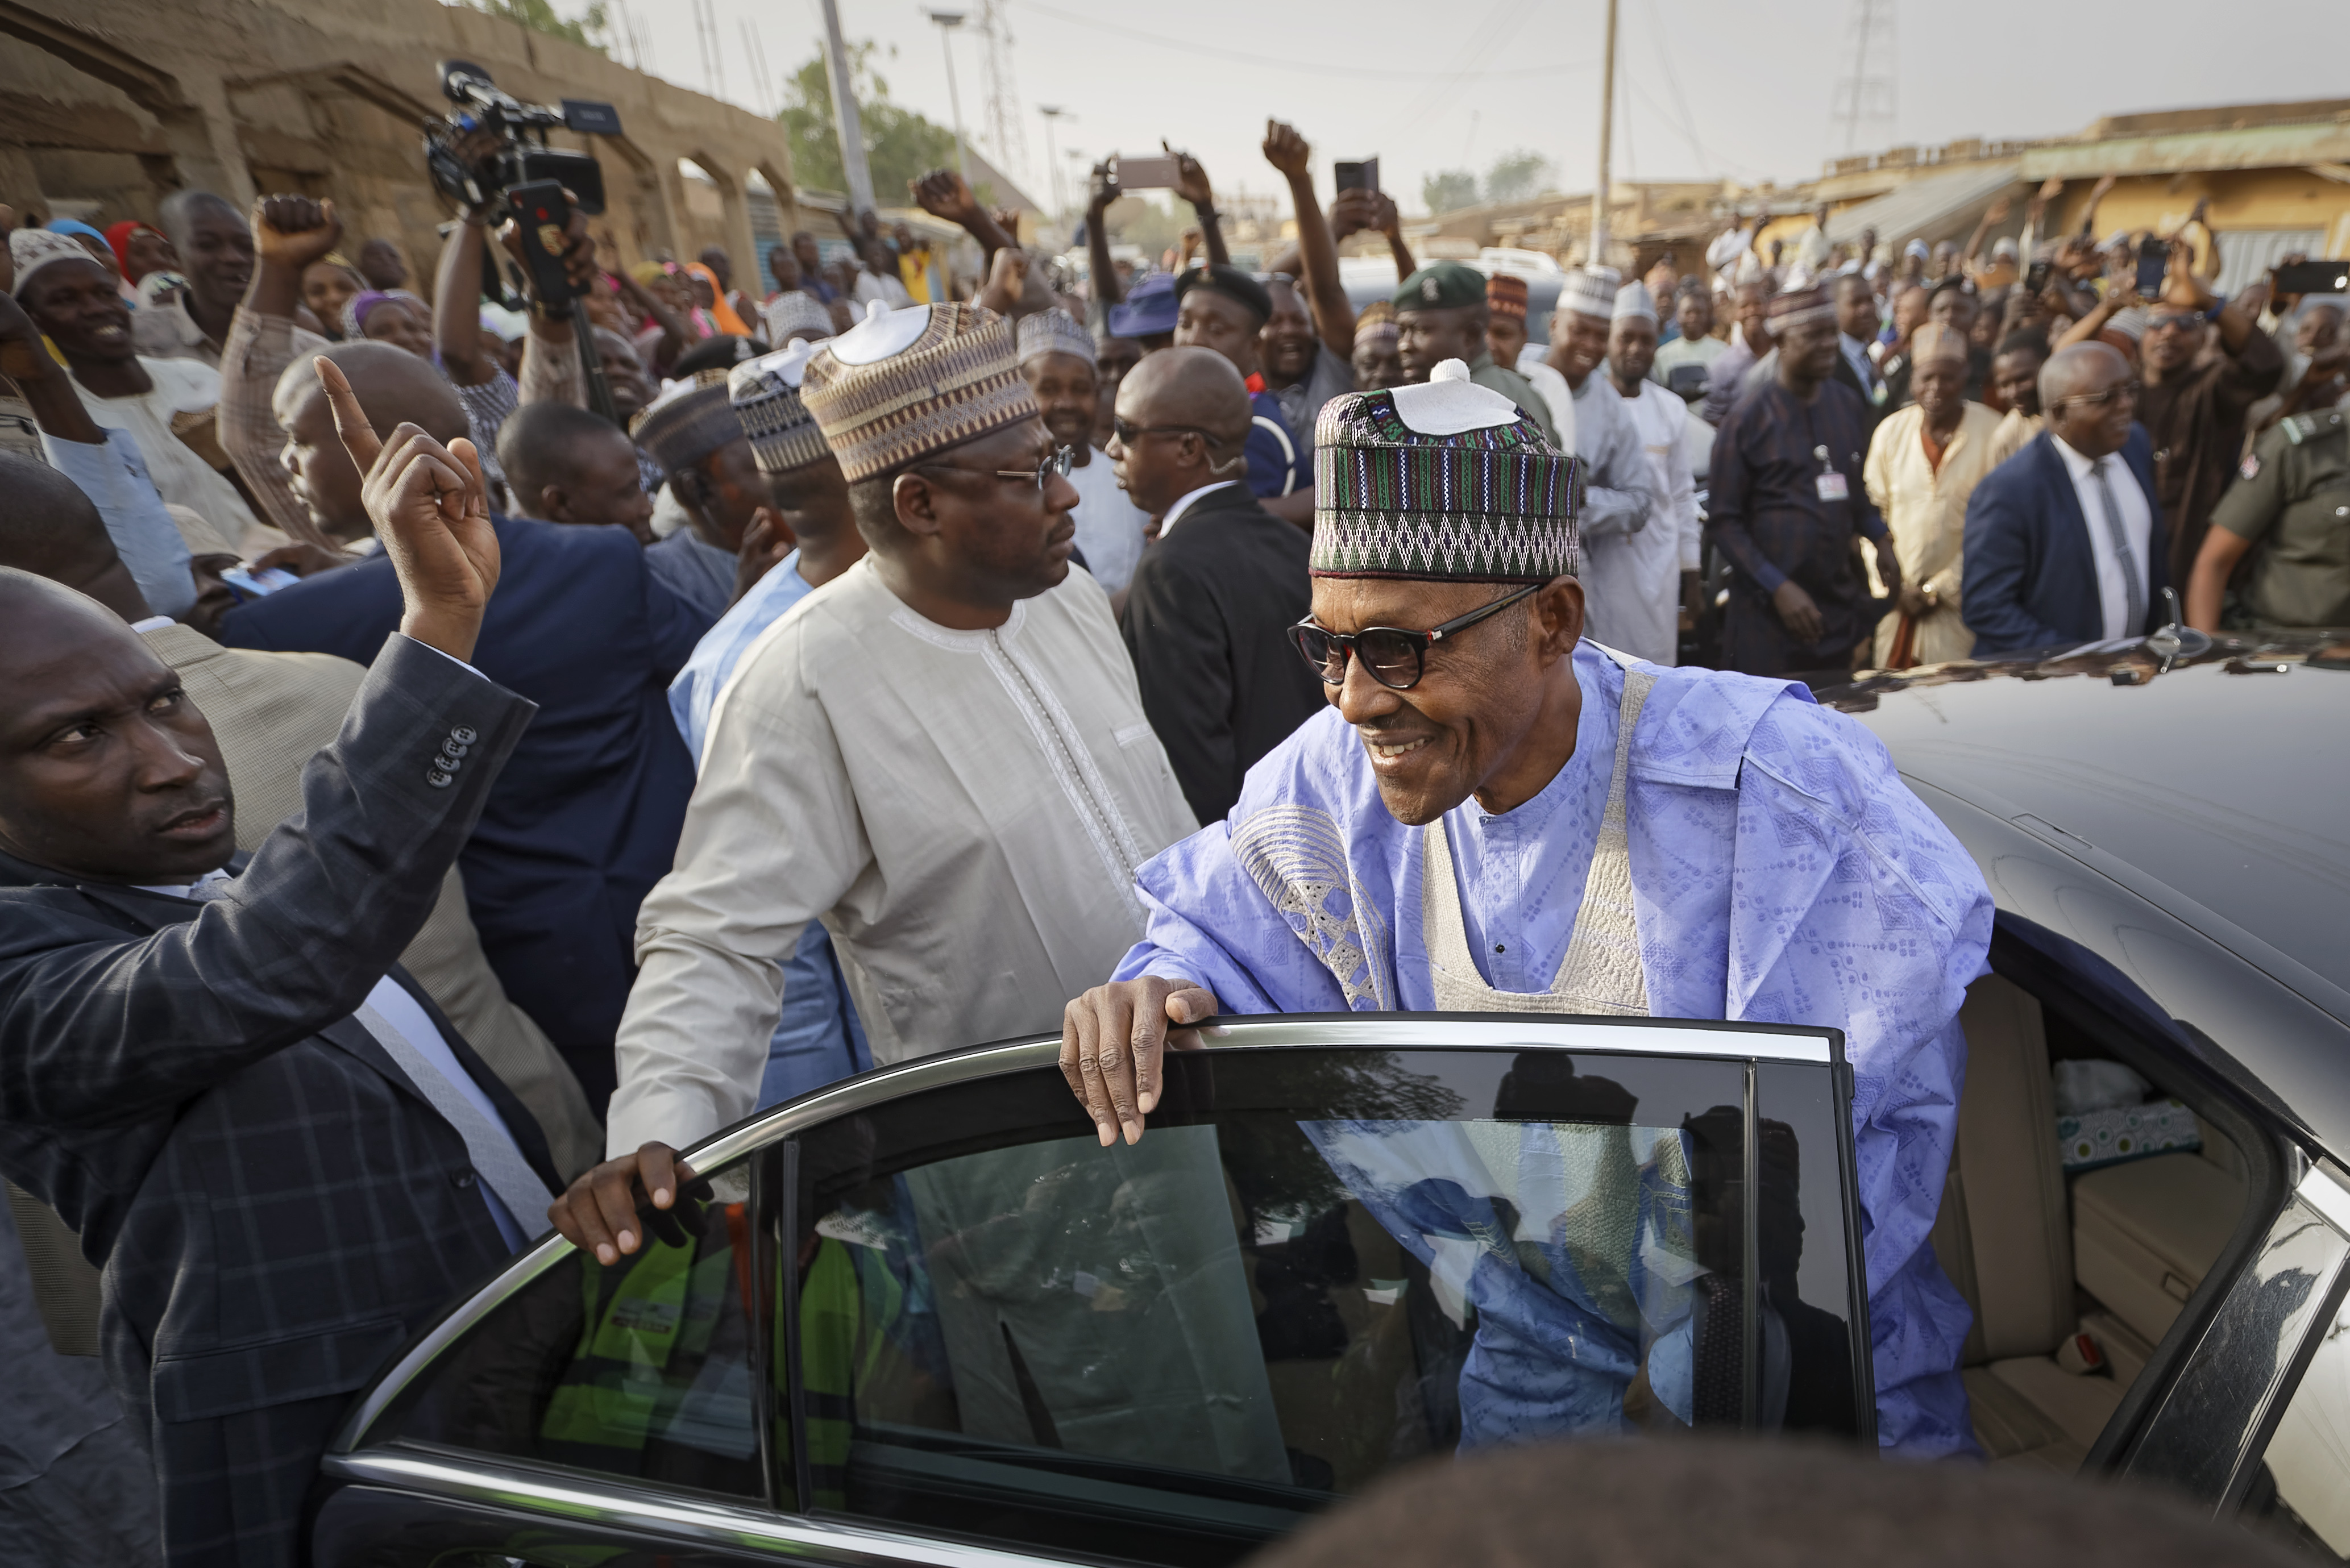 Nigeria's President Muhammadu Buhari leaves after casting his vote in his hometown of Daura, in northern Nigeria Saturday, Feb. 23, 2019. Nigerians are going to the polls for a presidential election Saturday, one week after a surprise delay for Africa's largest democracy. (AP Photo/Ben Curtis)